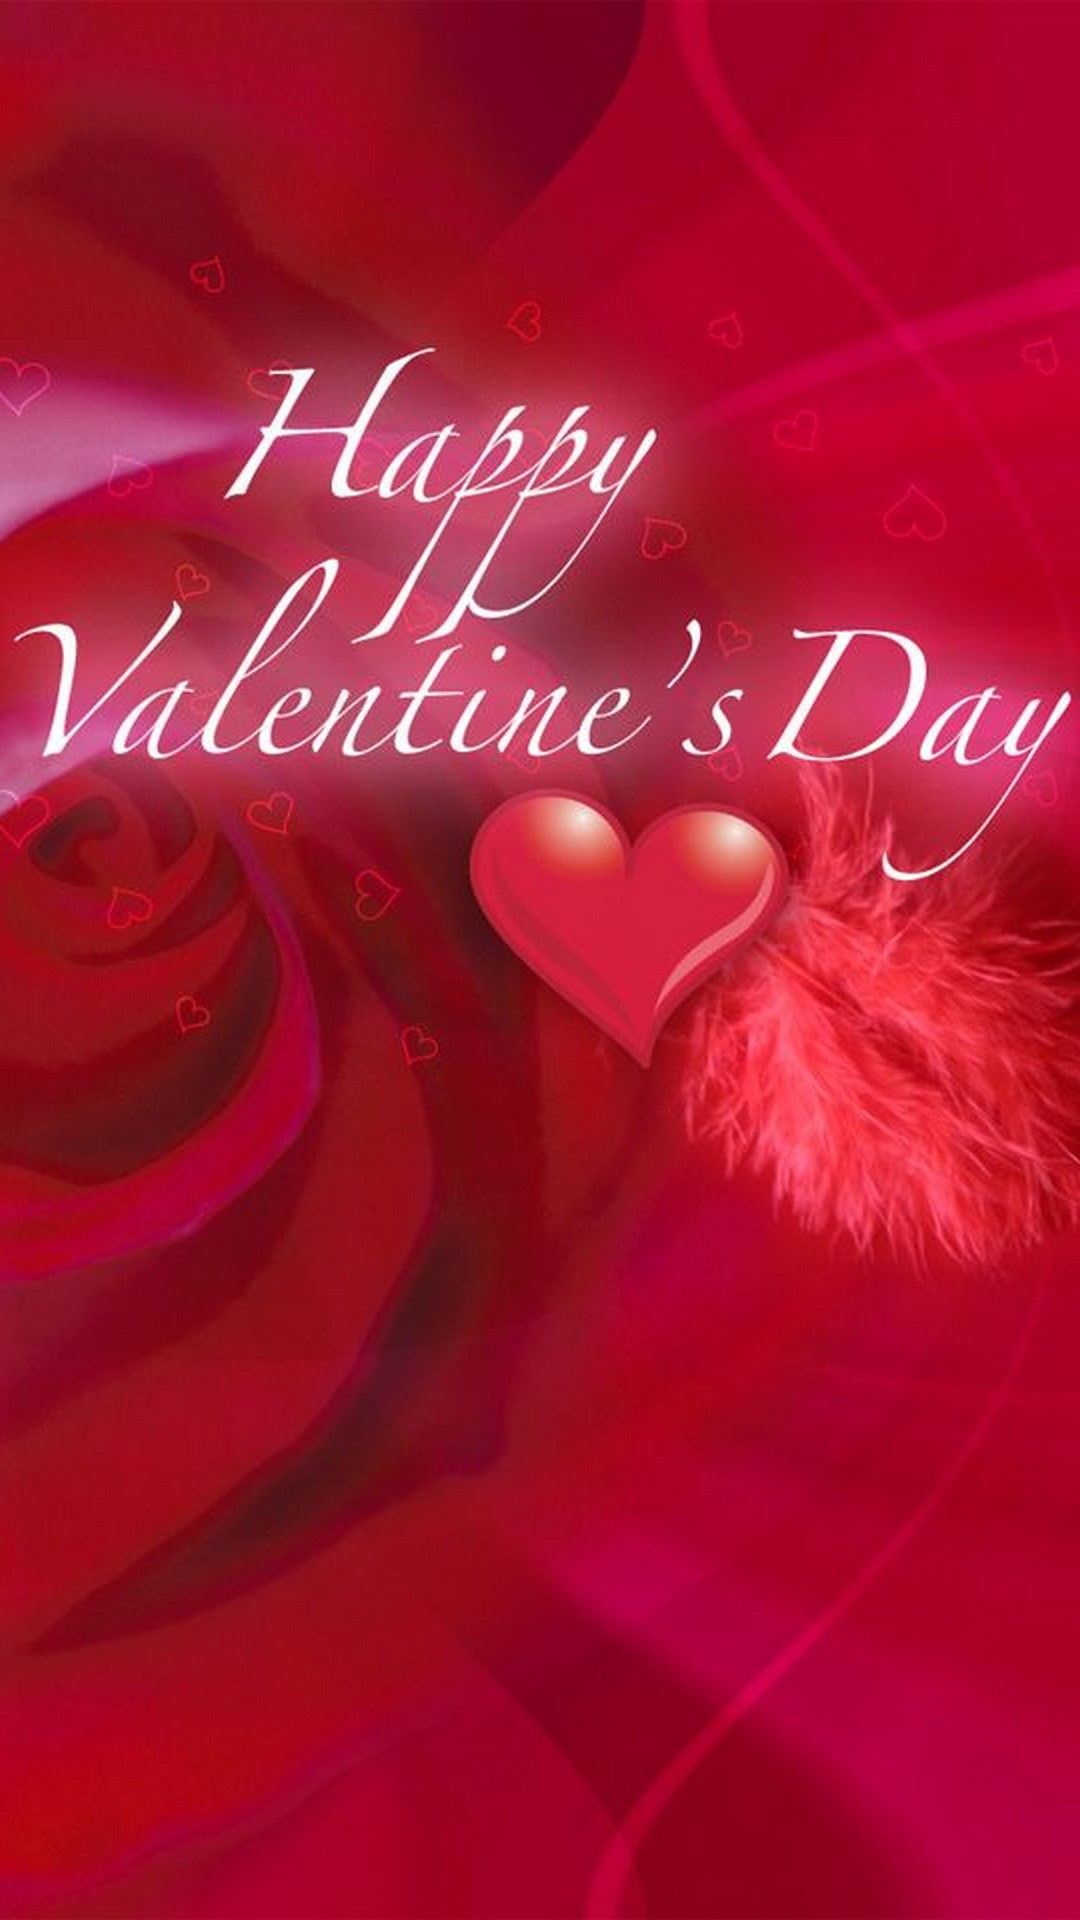 Top Valentine's Wallpaper Ideas For Your iPhone